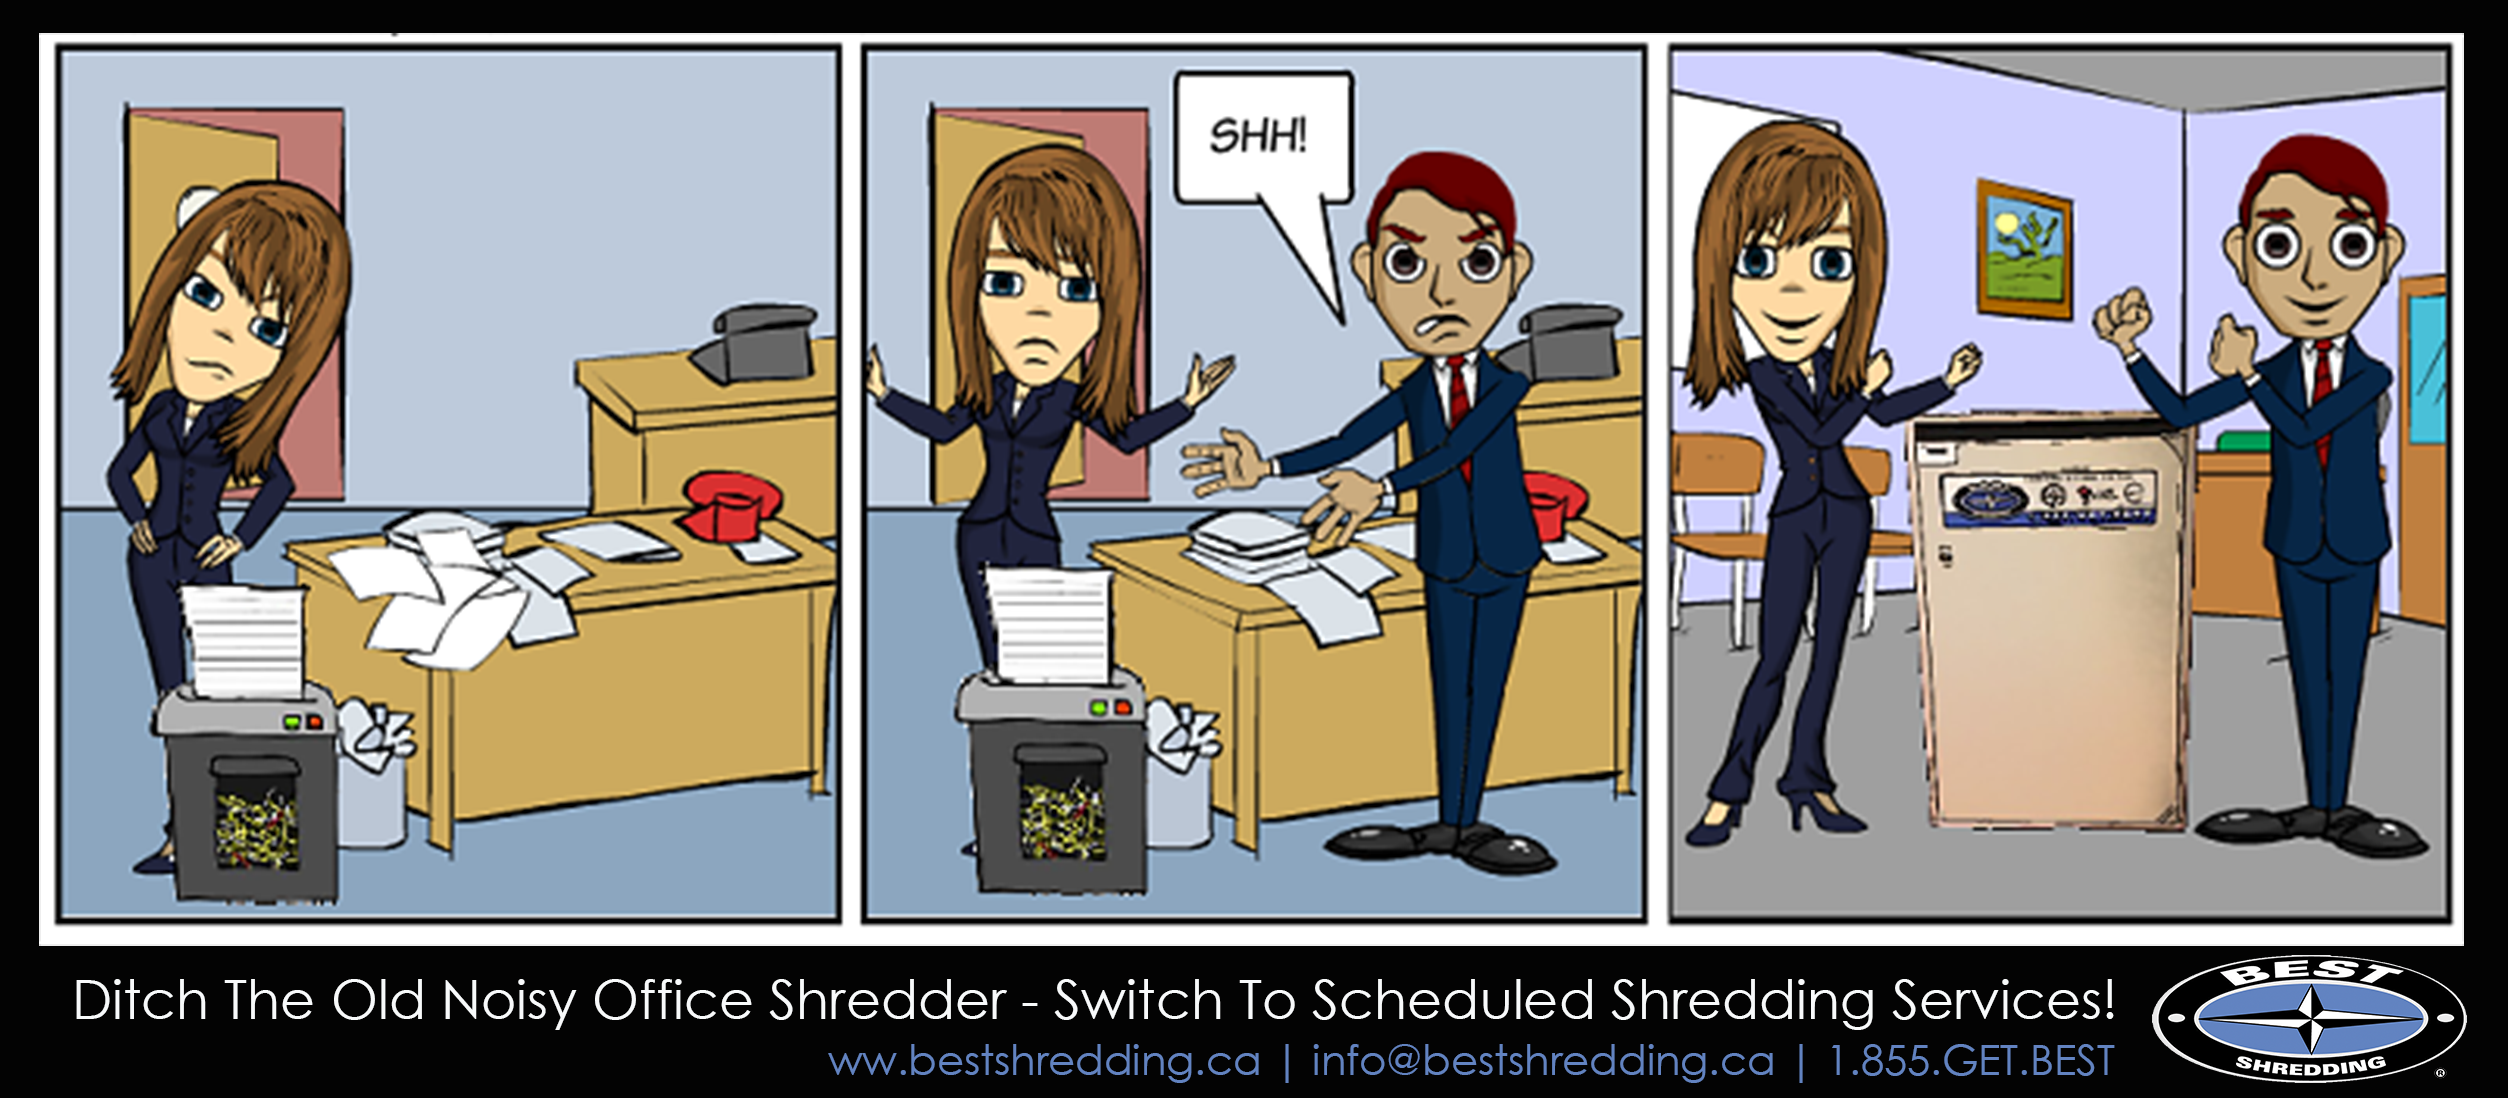 Best Shredding Scheduled Comic